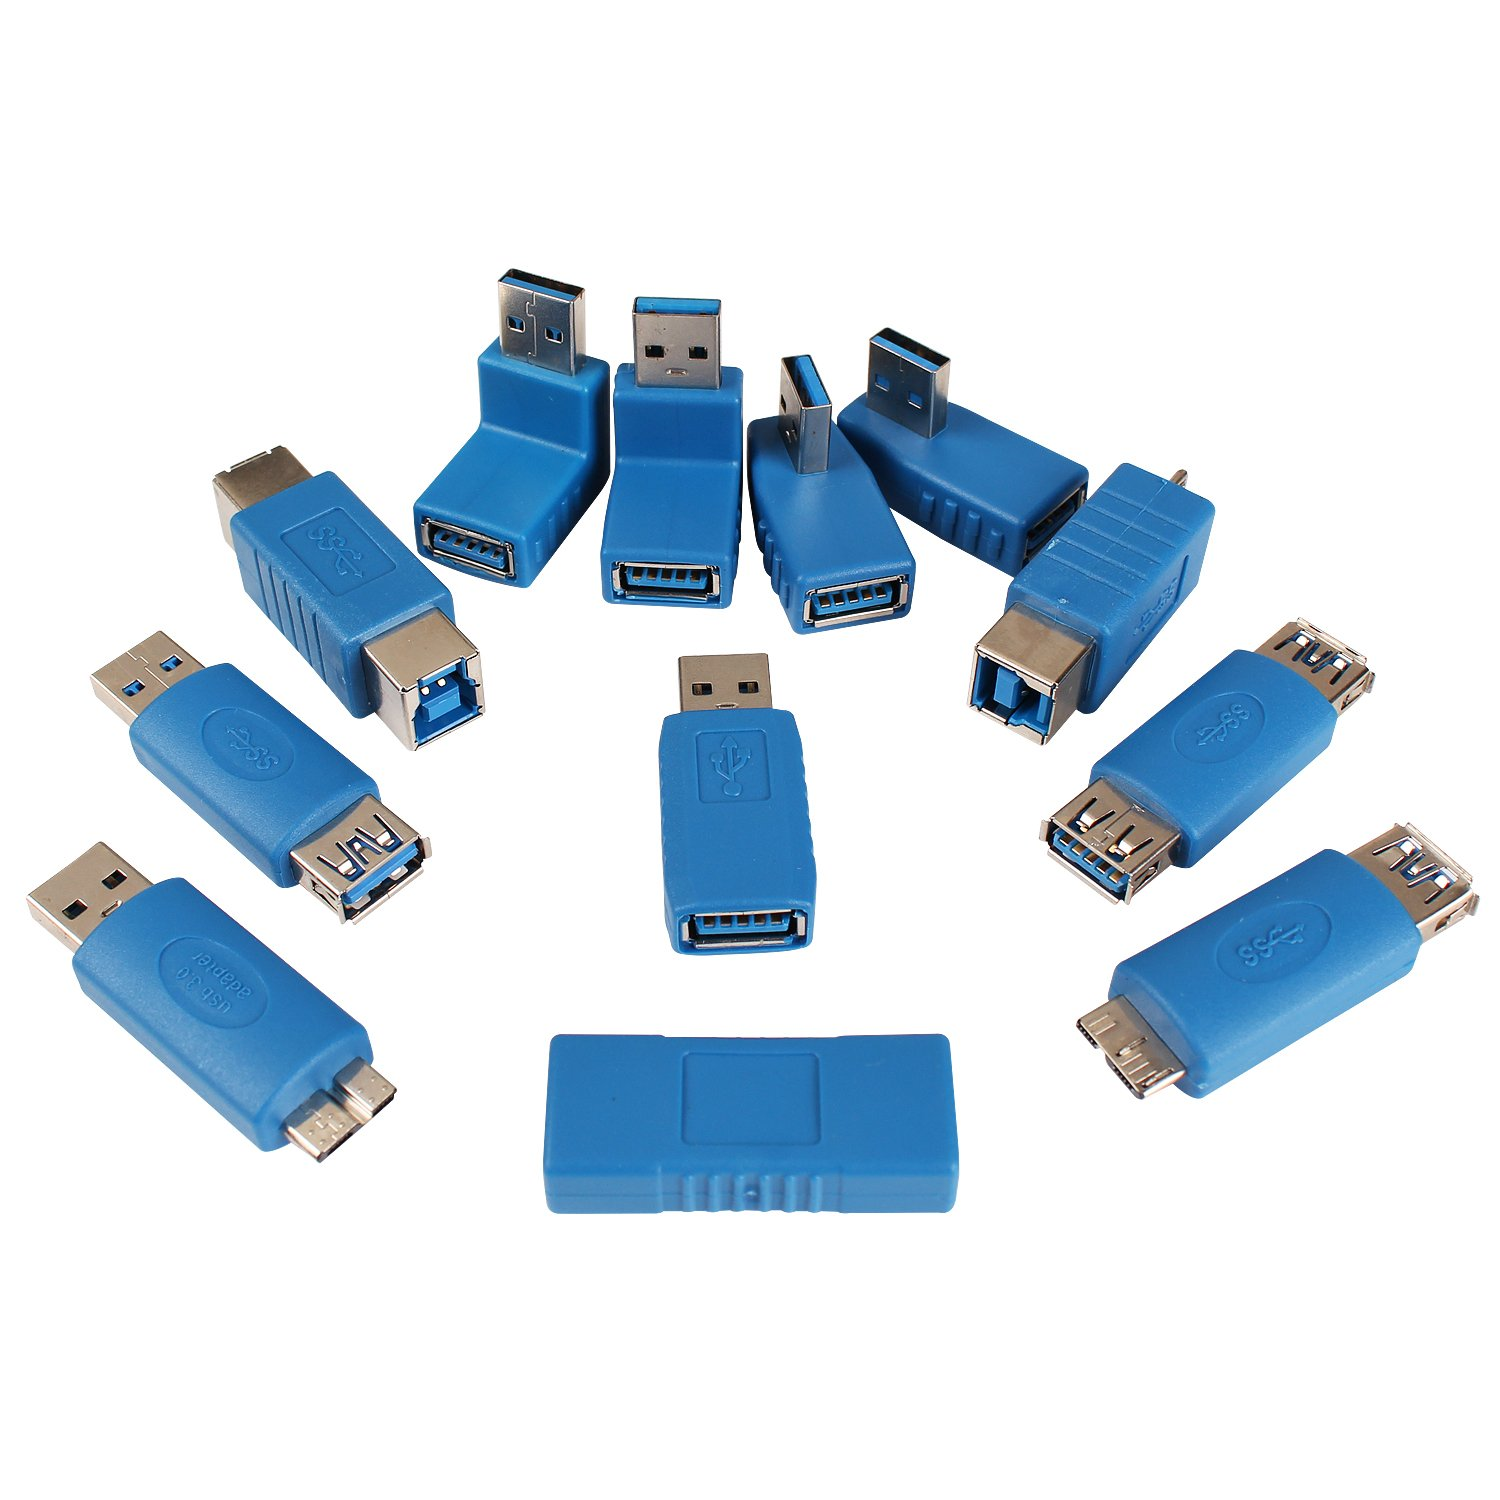 USB 3.0 Adapter Couplers Toolkit Type A to B or MicroB or Mini And Male to Female Adapters by NICE TECH NIC